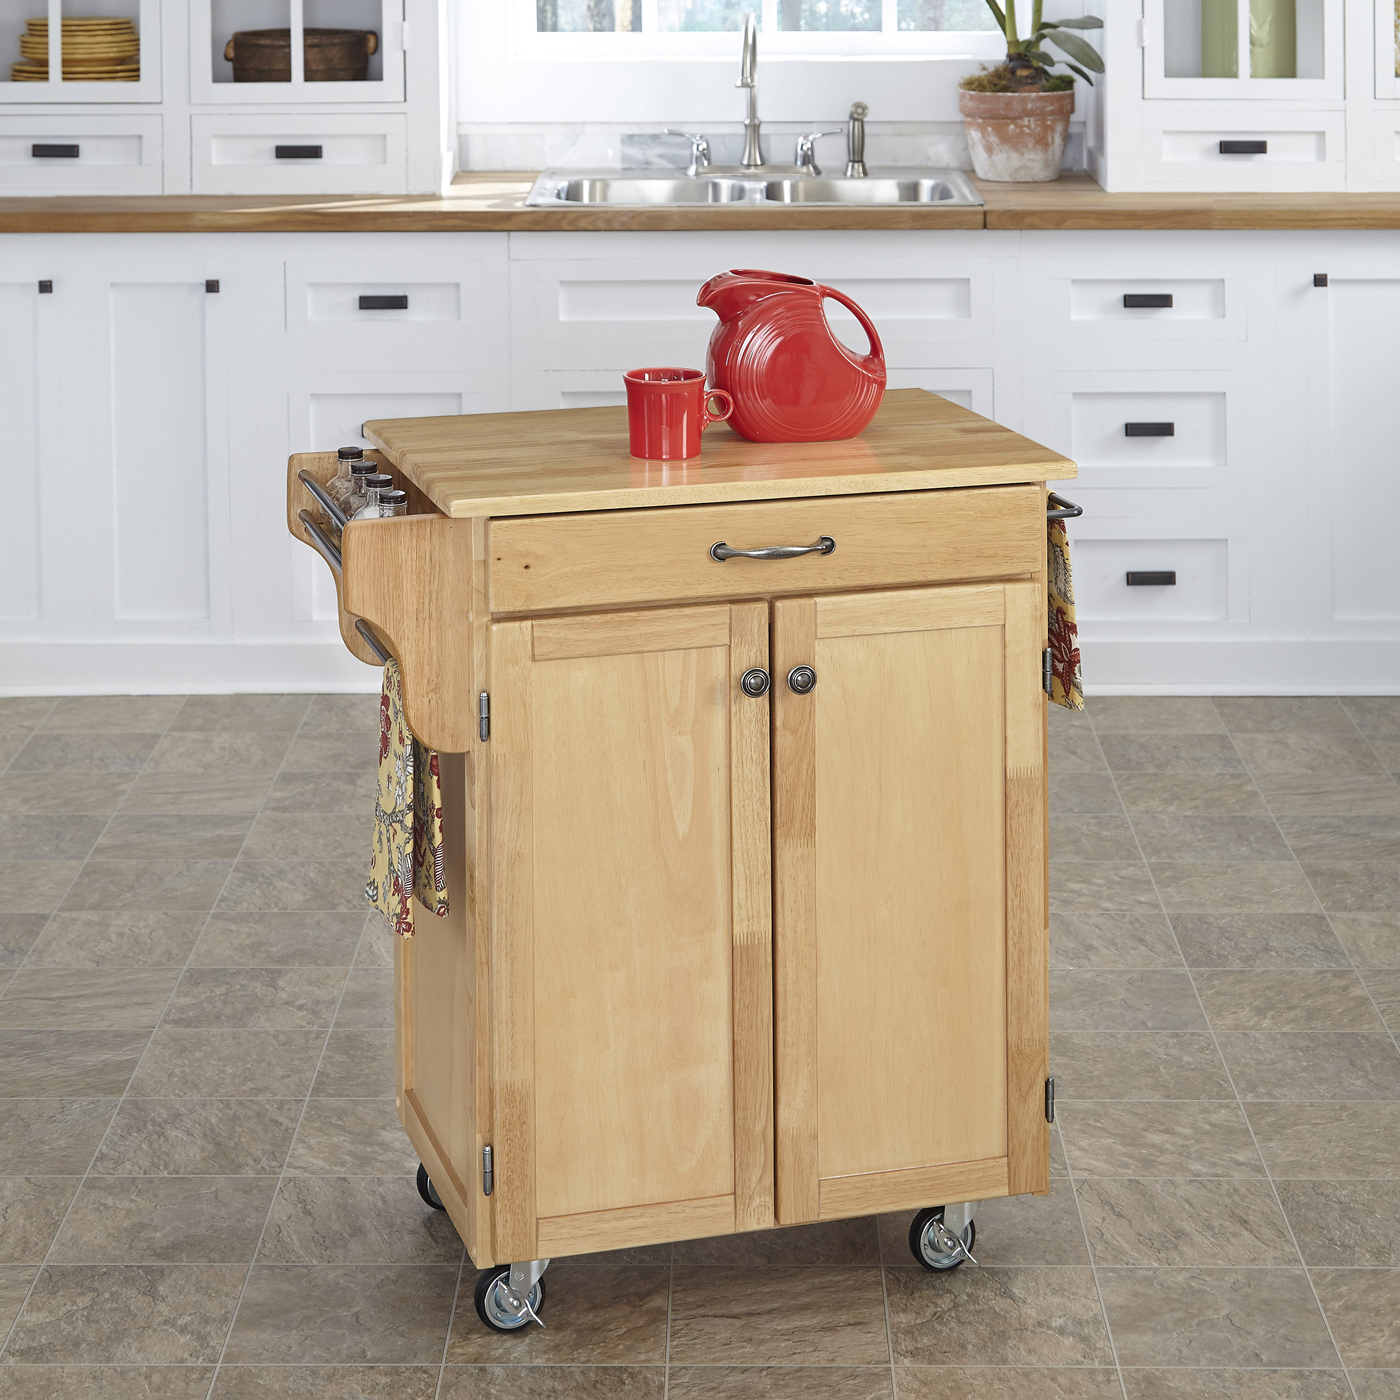 Granite Top Kitchen Island Cart Kitchen Carts On Wheels Movable Meal Preparation And